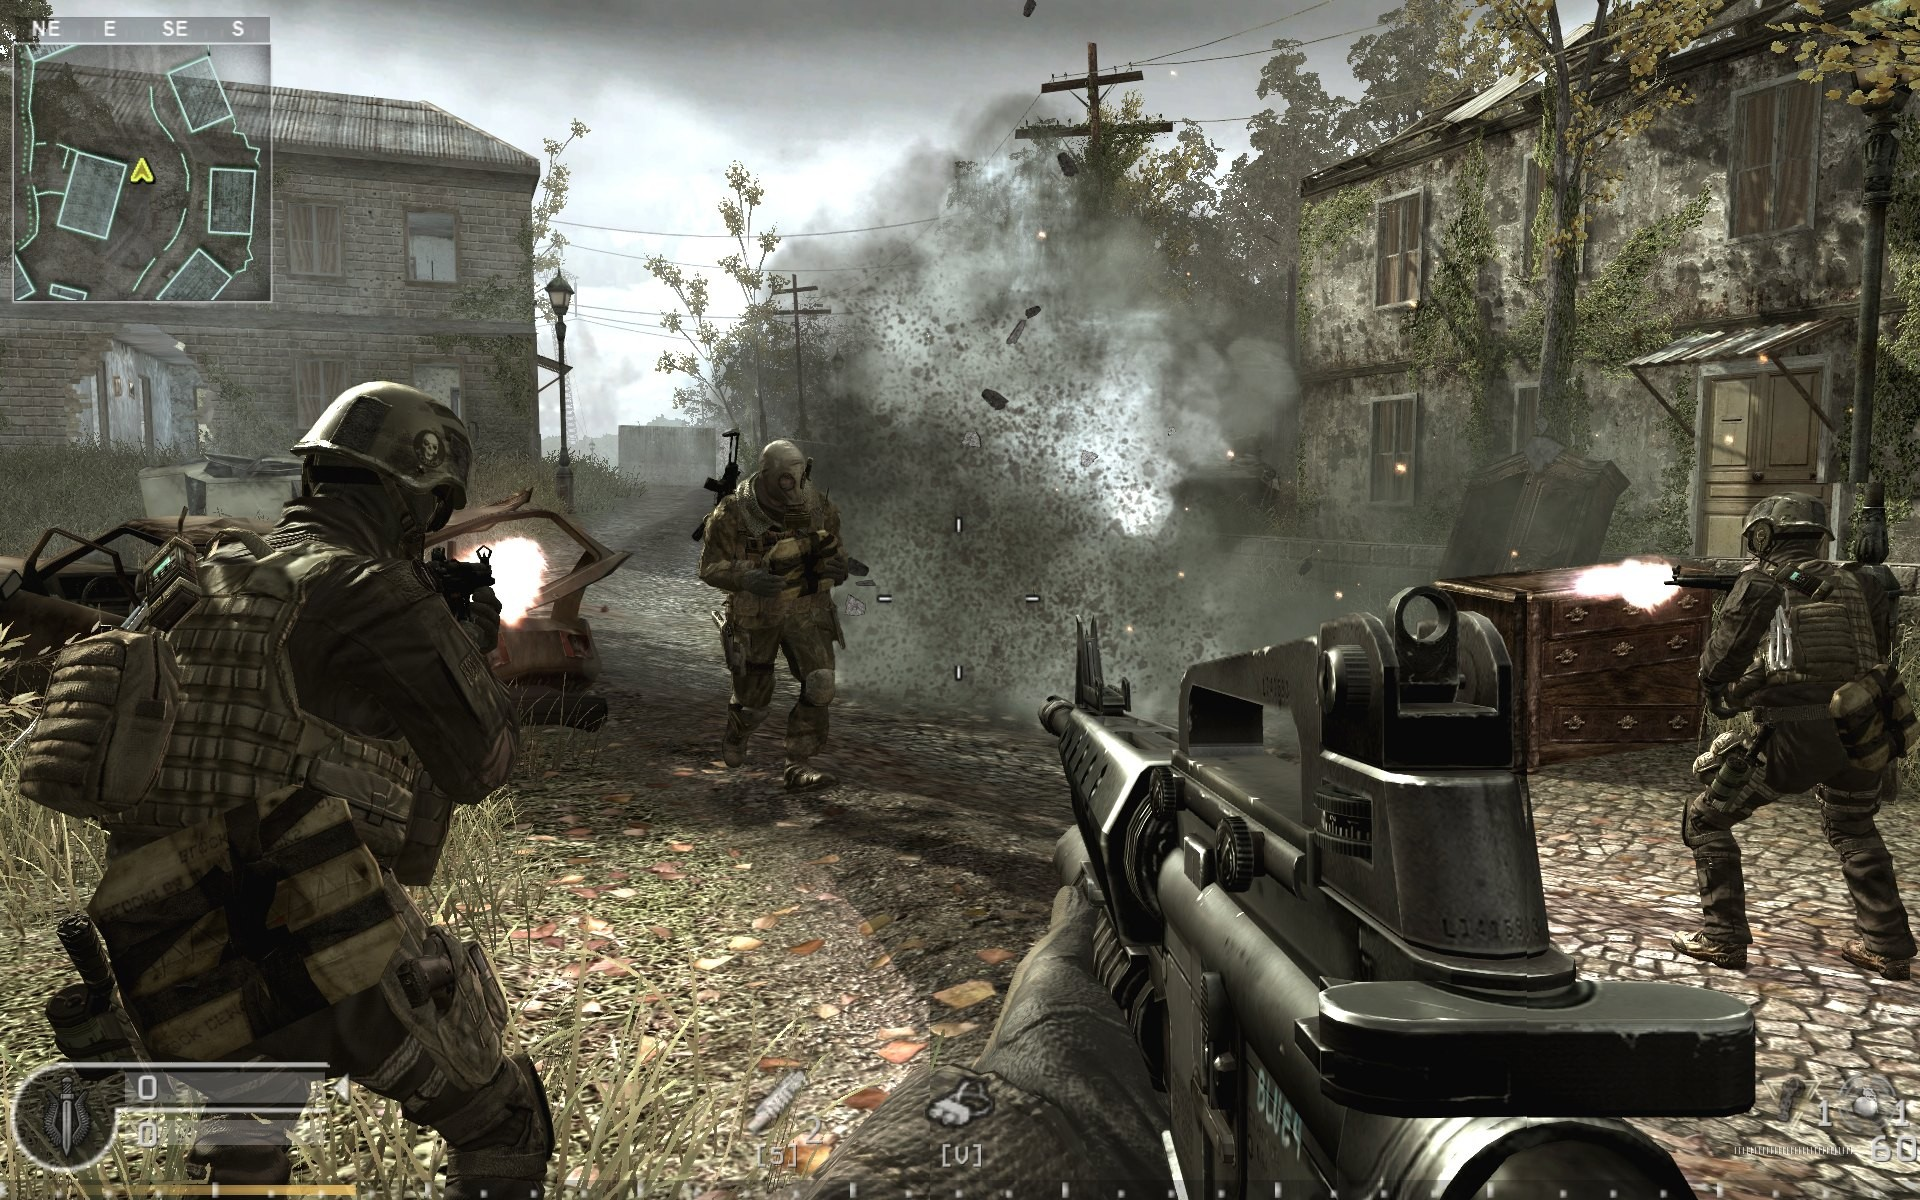 Why I hate first person shooters and from the looks of things you do too